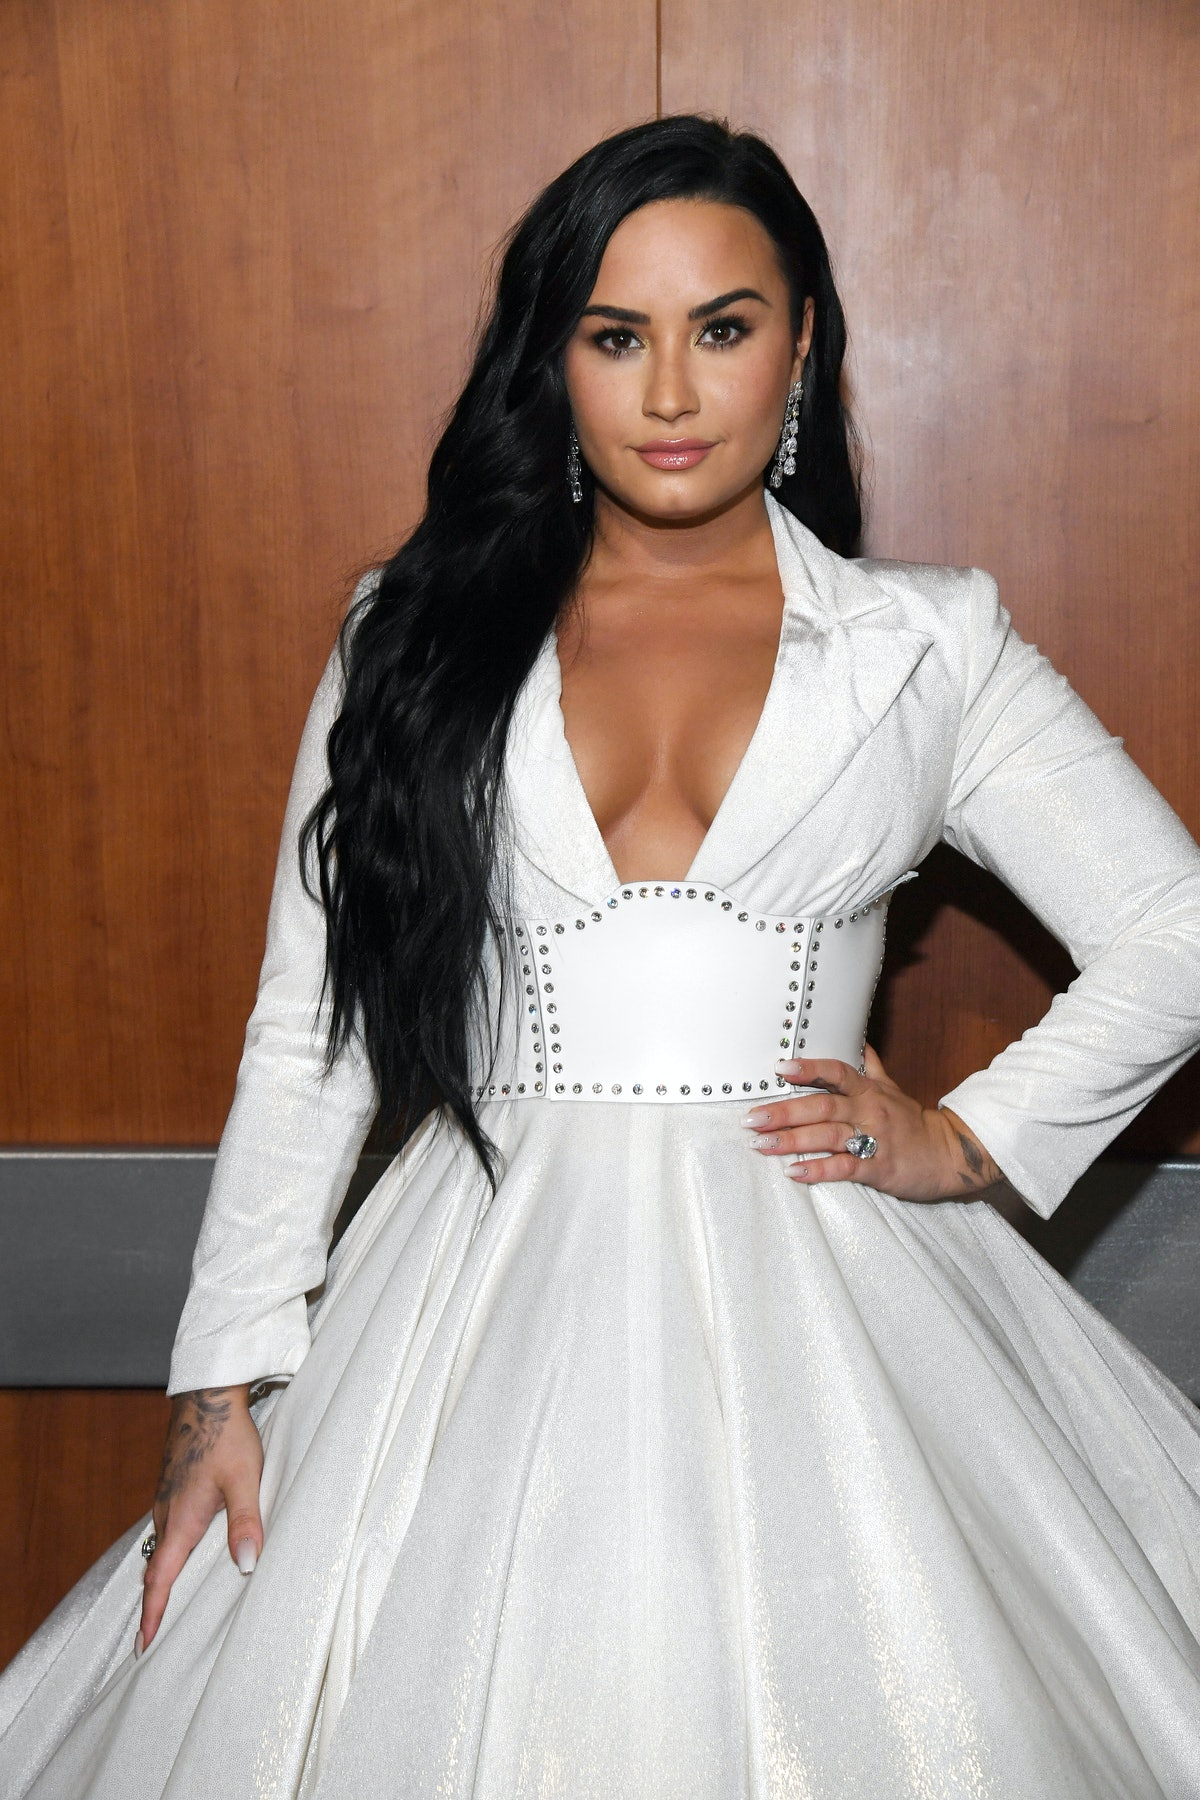 LOS ANGELES, CALIFORNIA - JANUARY 26: Demi Lovato attends the 62nd Annual GRAMMY Awards at STAPLES Center on January 26, 2020 in Los Angeles, California. (Photo by Kevin Mazur/Getty Images for The Recording Academy)